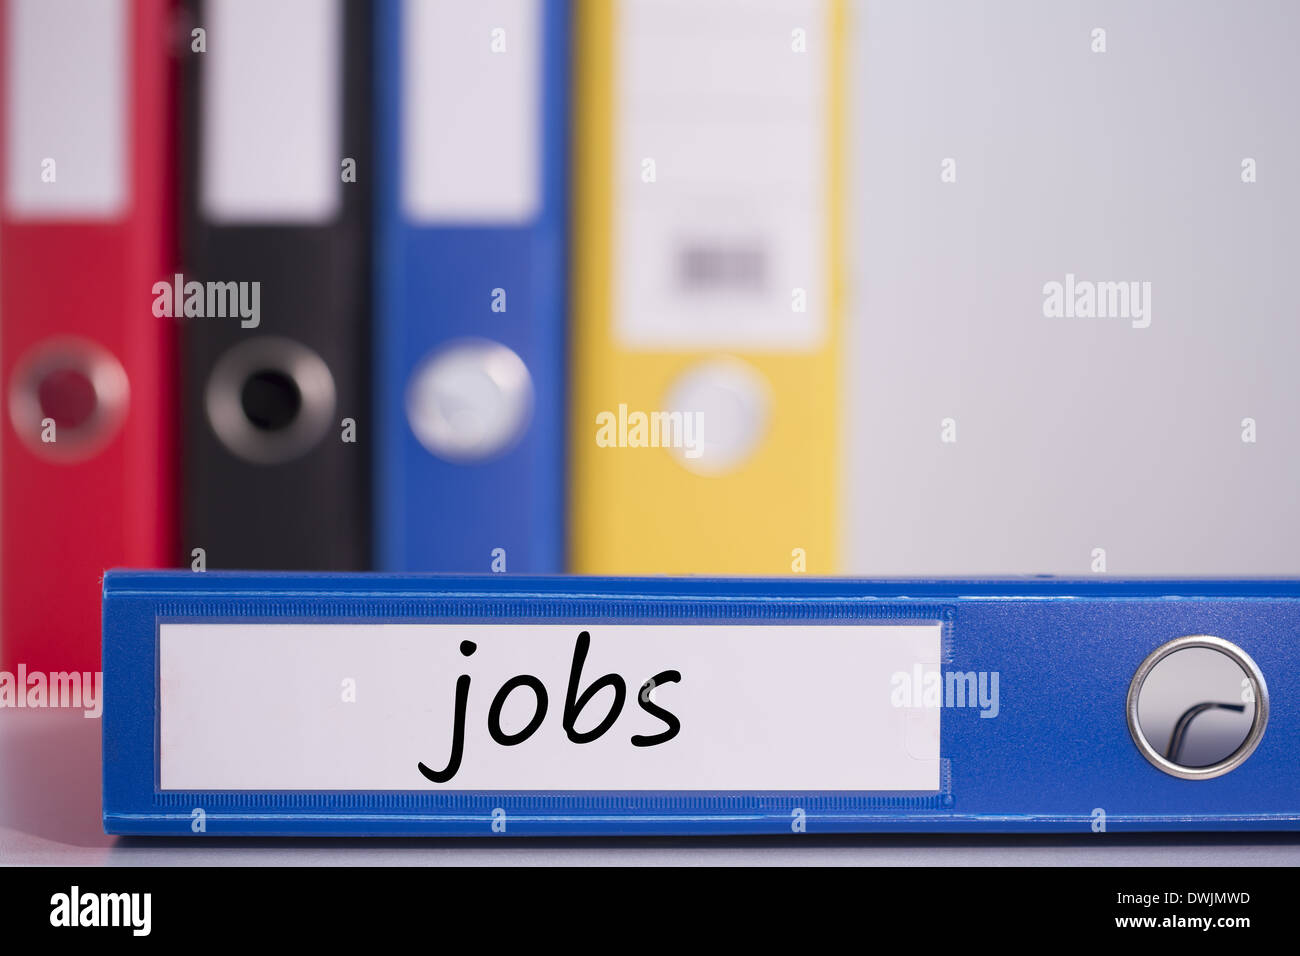 Jobs on blue business binder - Stock Image